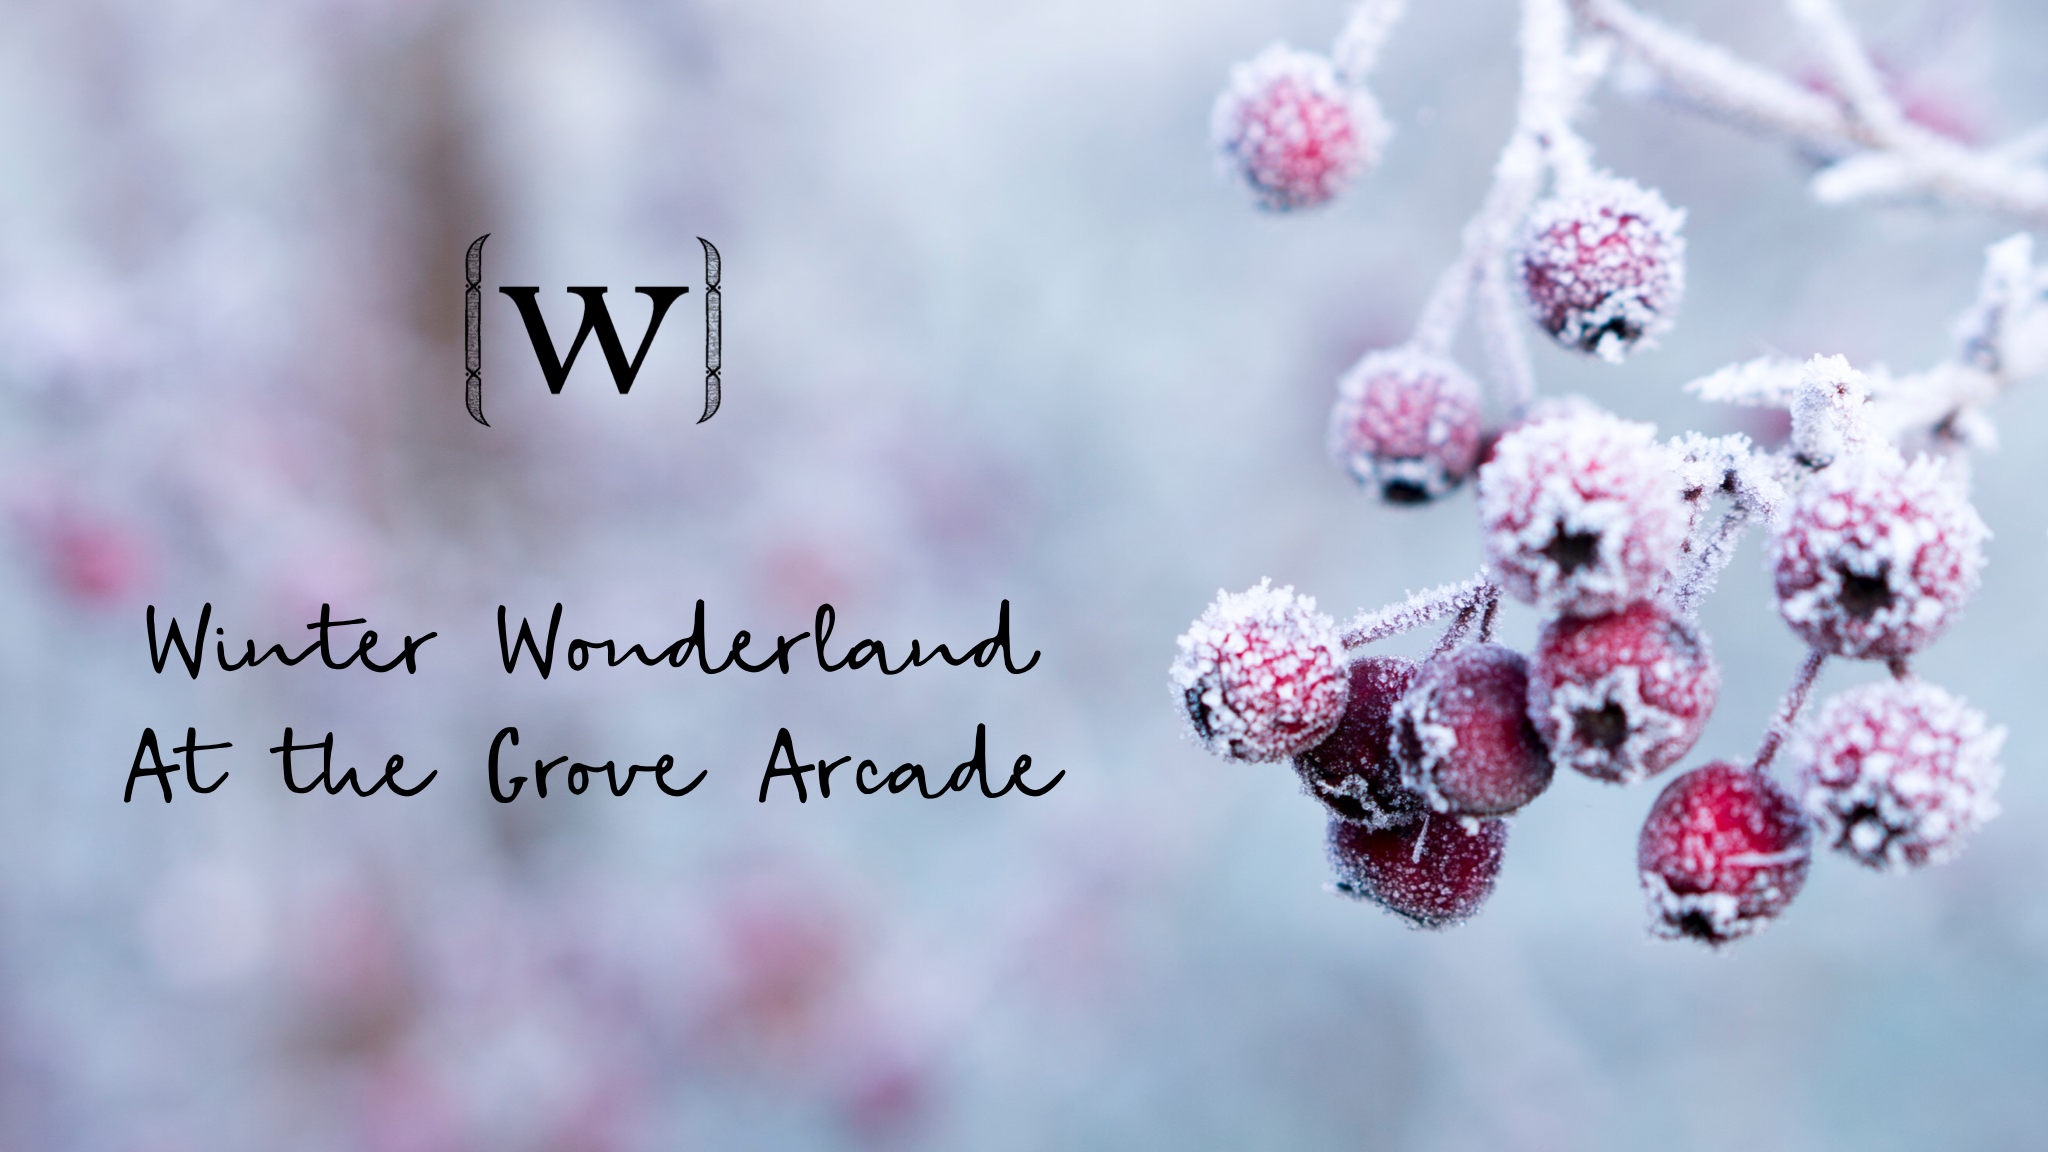 Winter Wonderland at the Grove Arcade